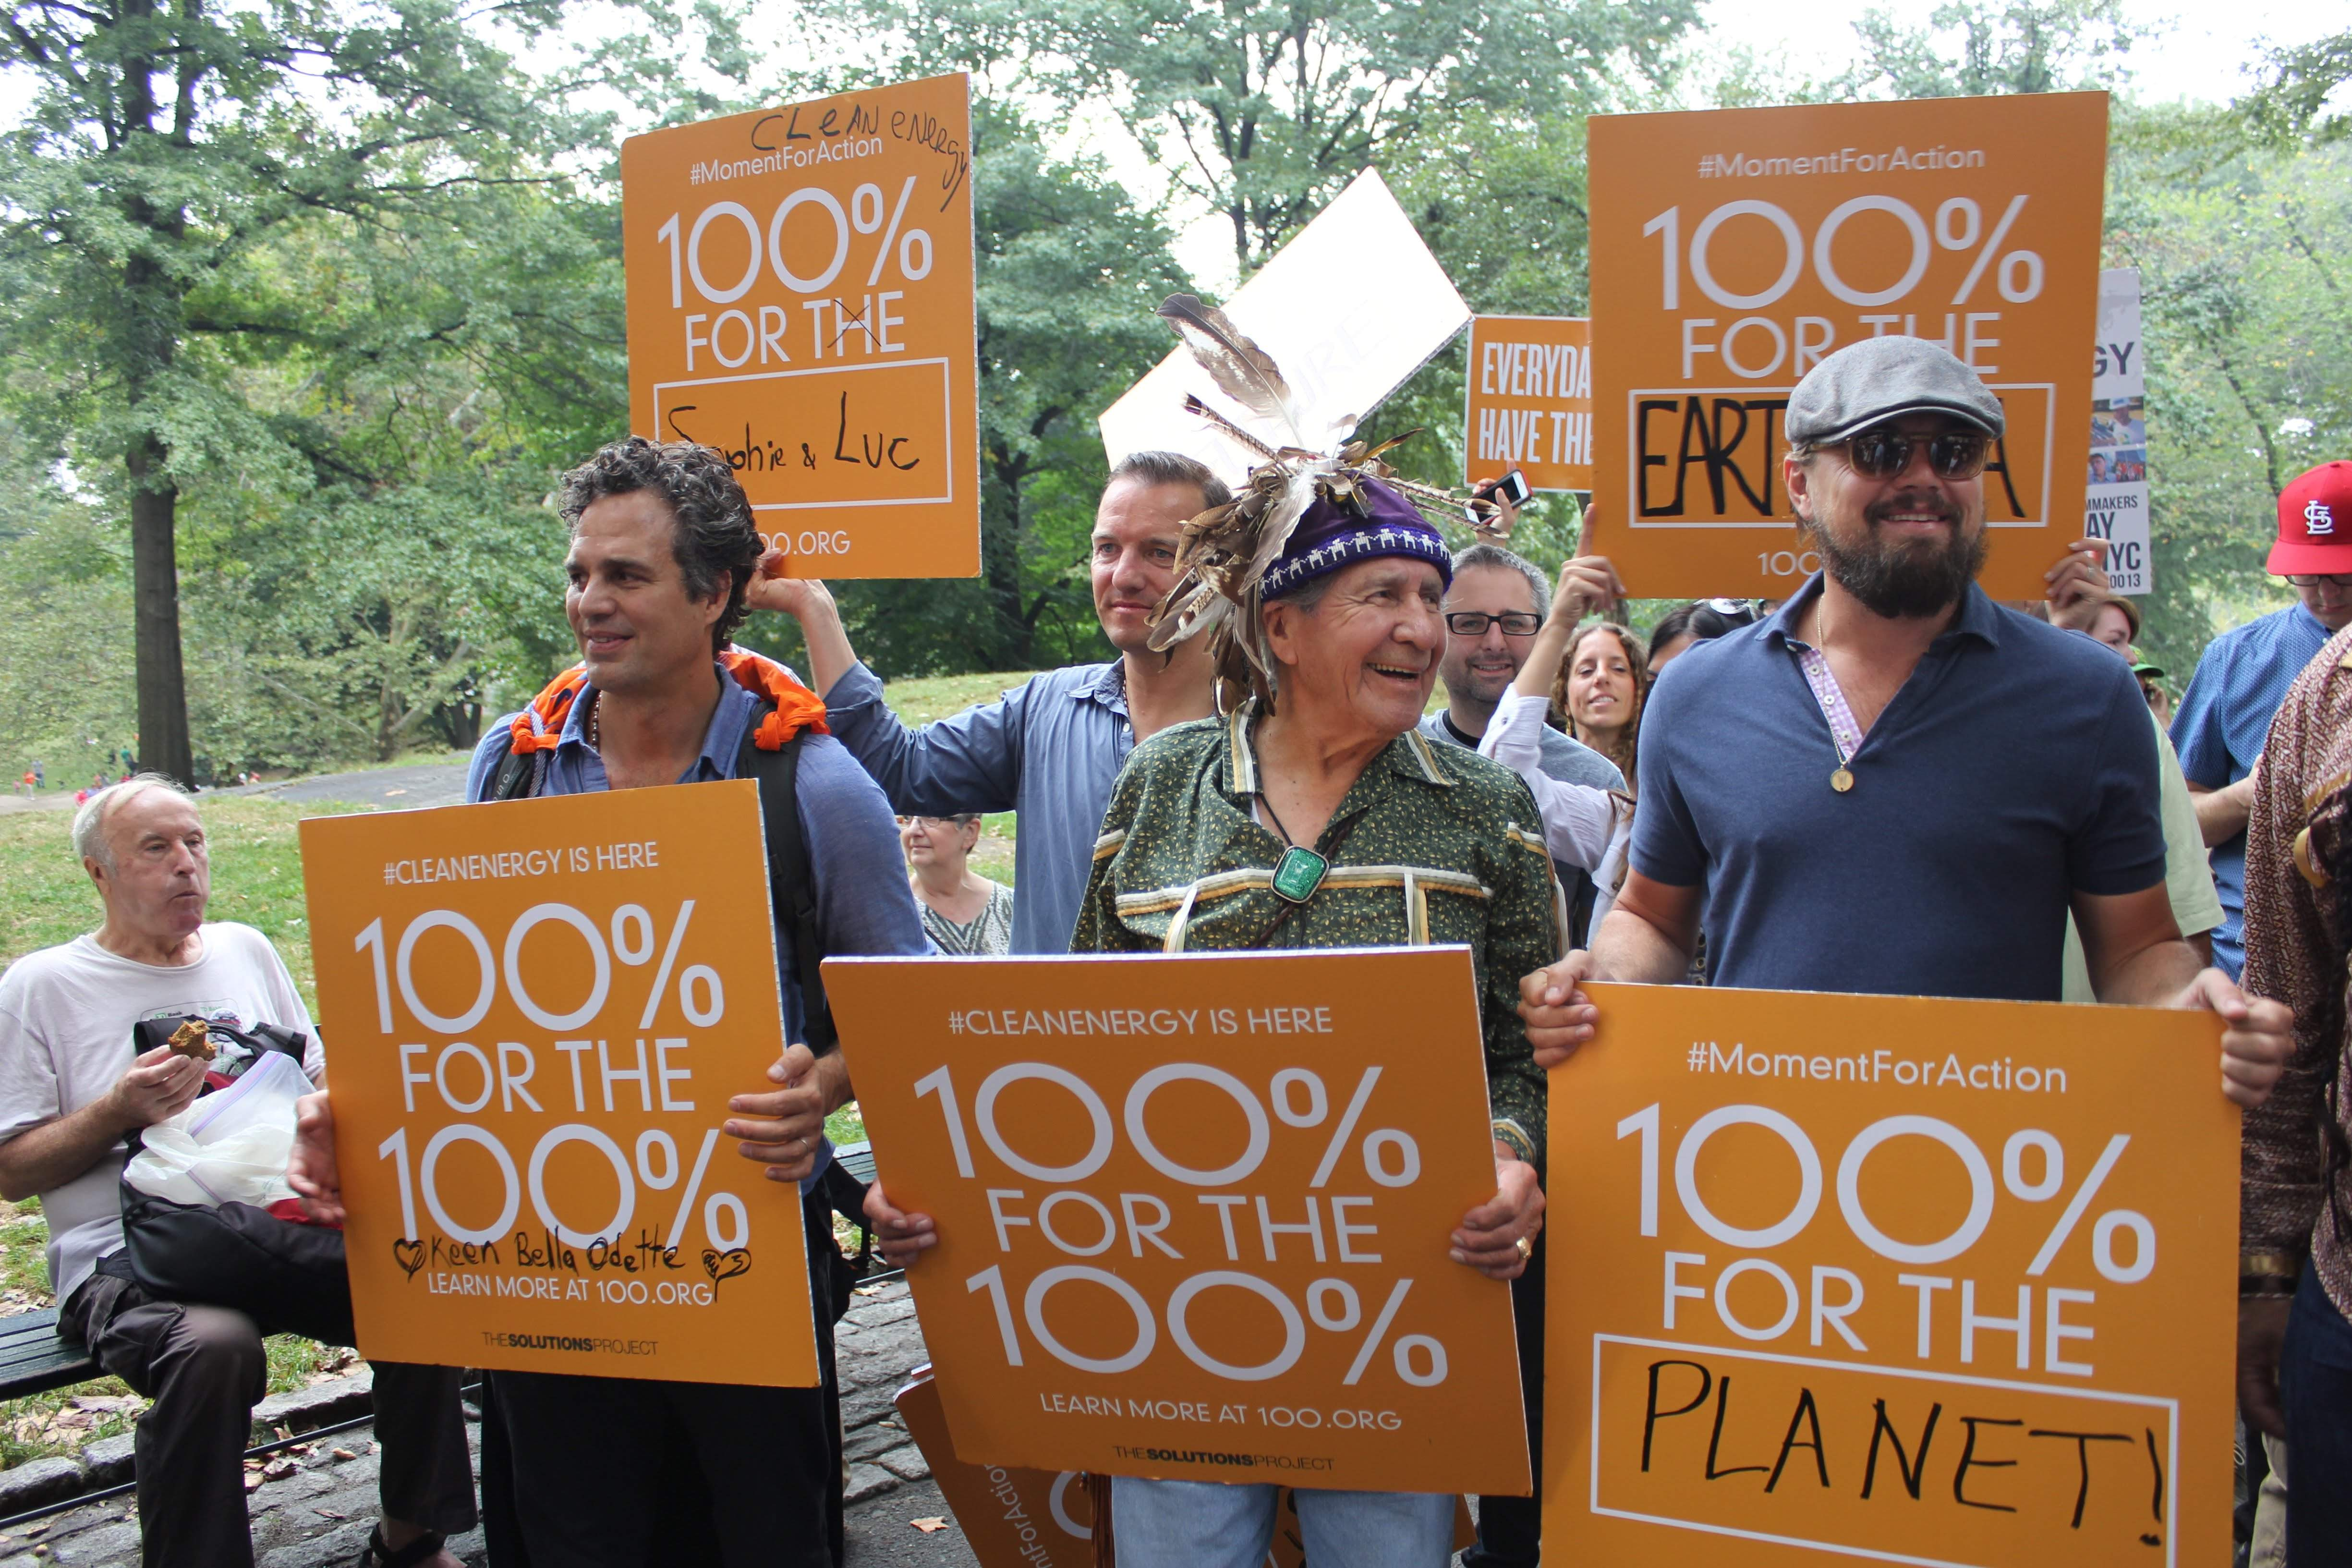 Mark Ruffalo, Leonardo DiCaprio, 2014 Climate March, 100% campaign